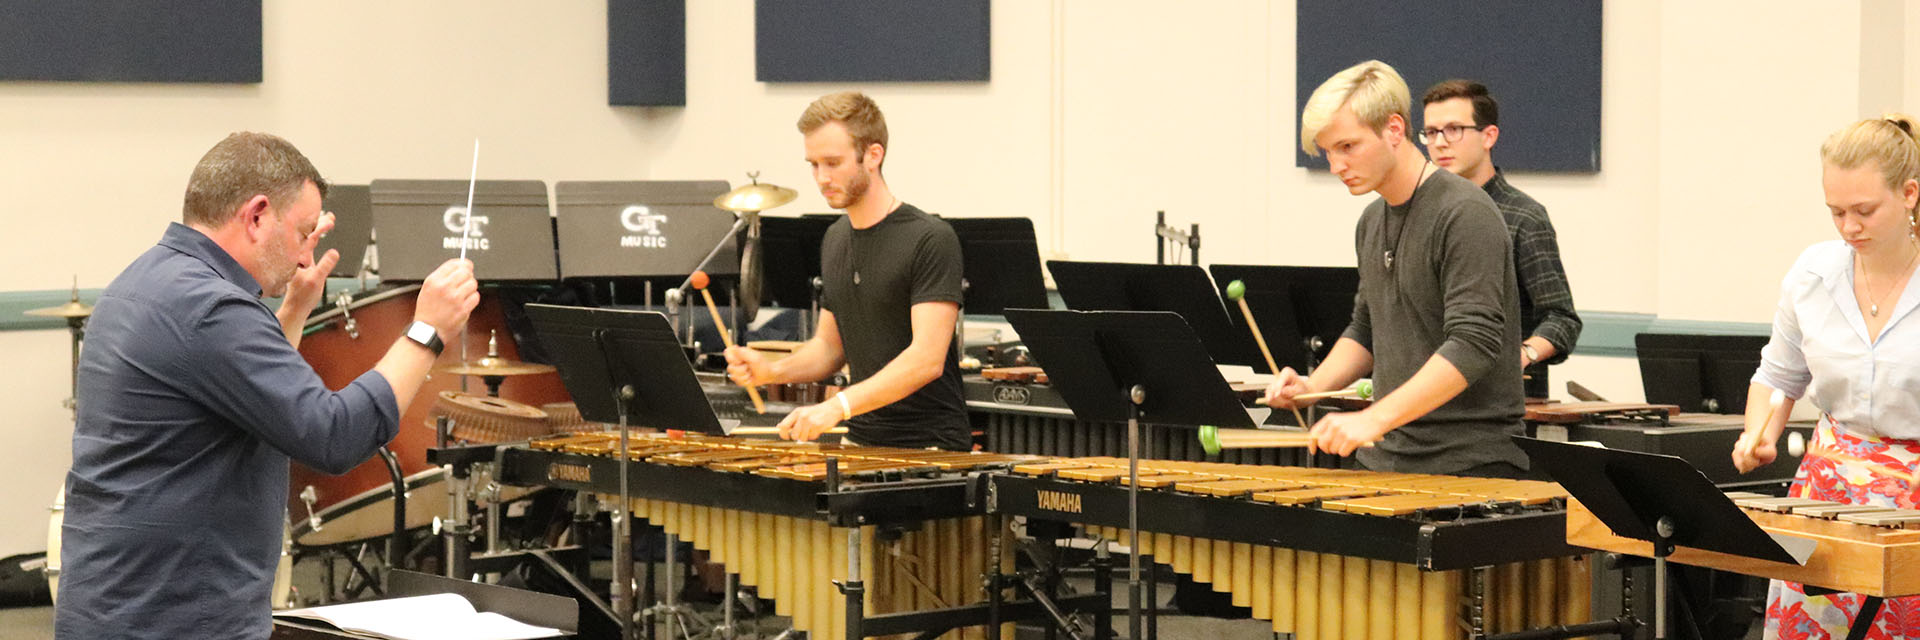 The Percussion Ensemble performs in concert.